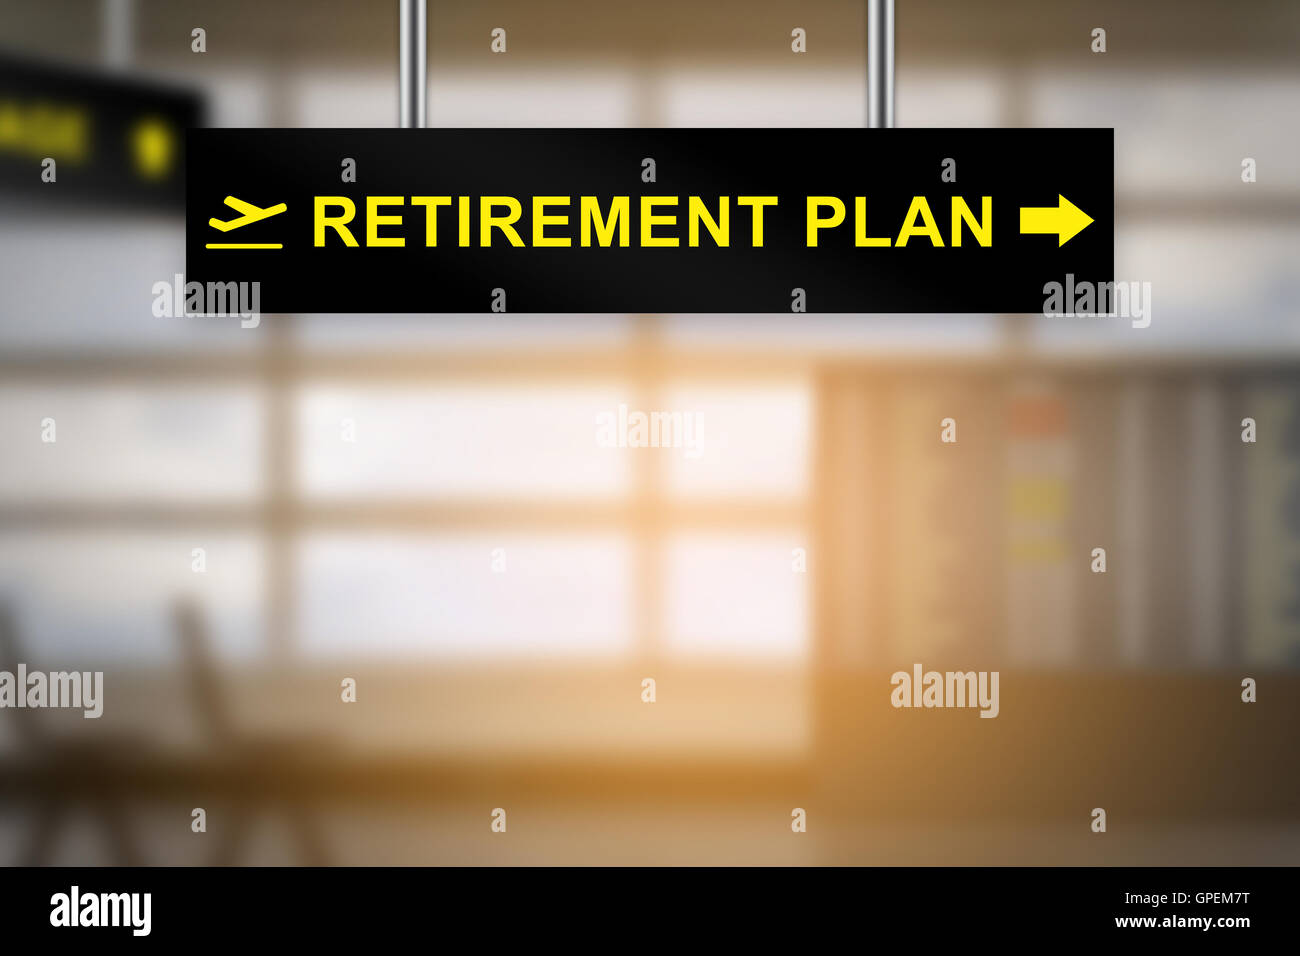 retirement plan on airport sign board with blurred background and copy space - Stock Image